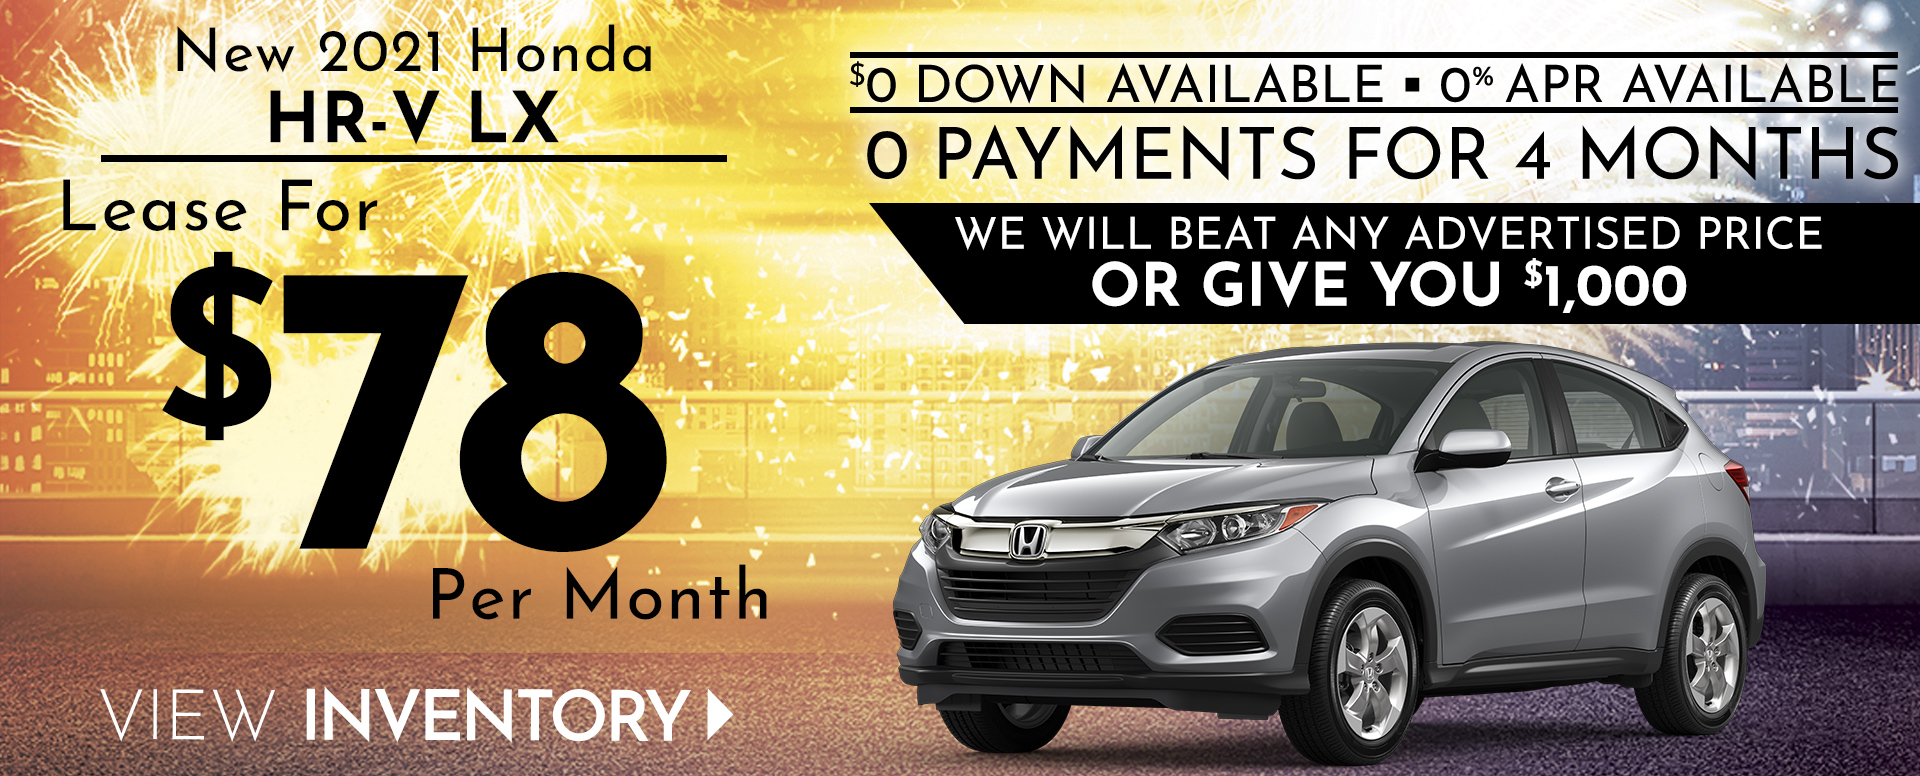 Honda HRV Offer